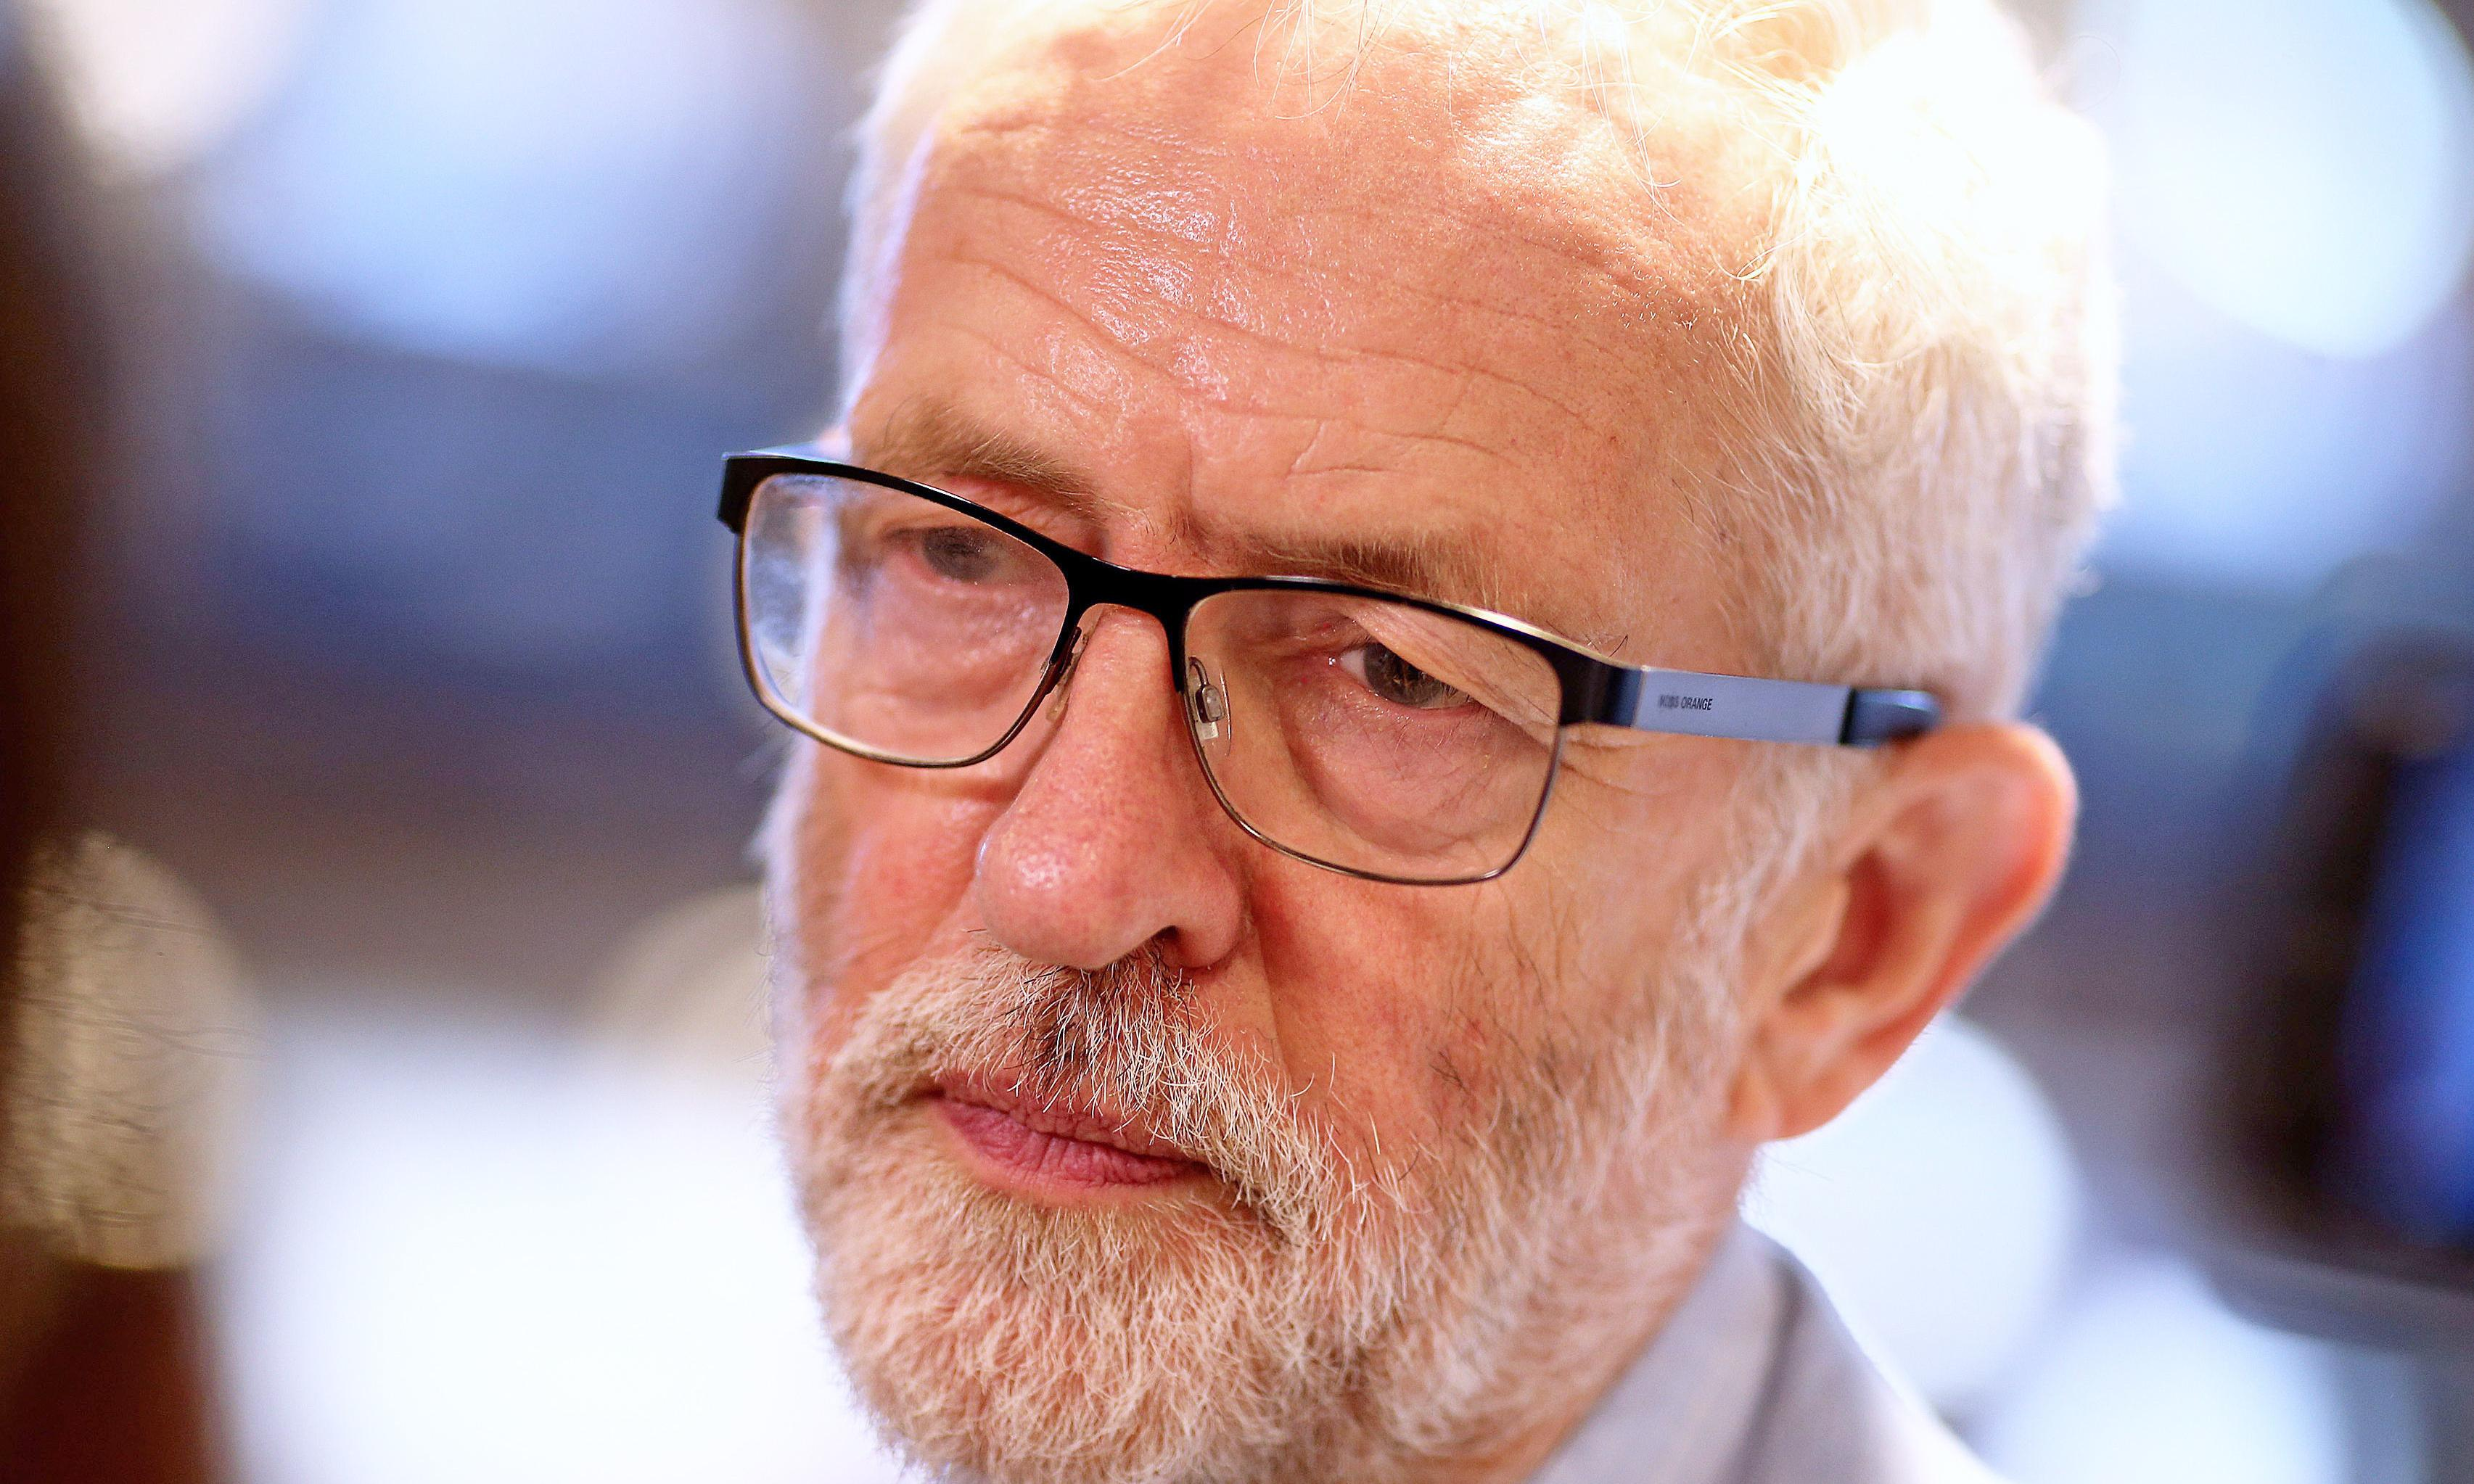 Jeremy Corbyn wants a general election, but is his party ready to fight one?